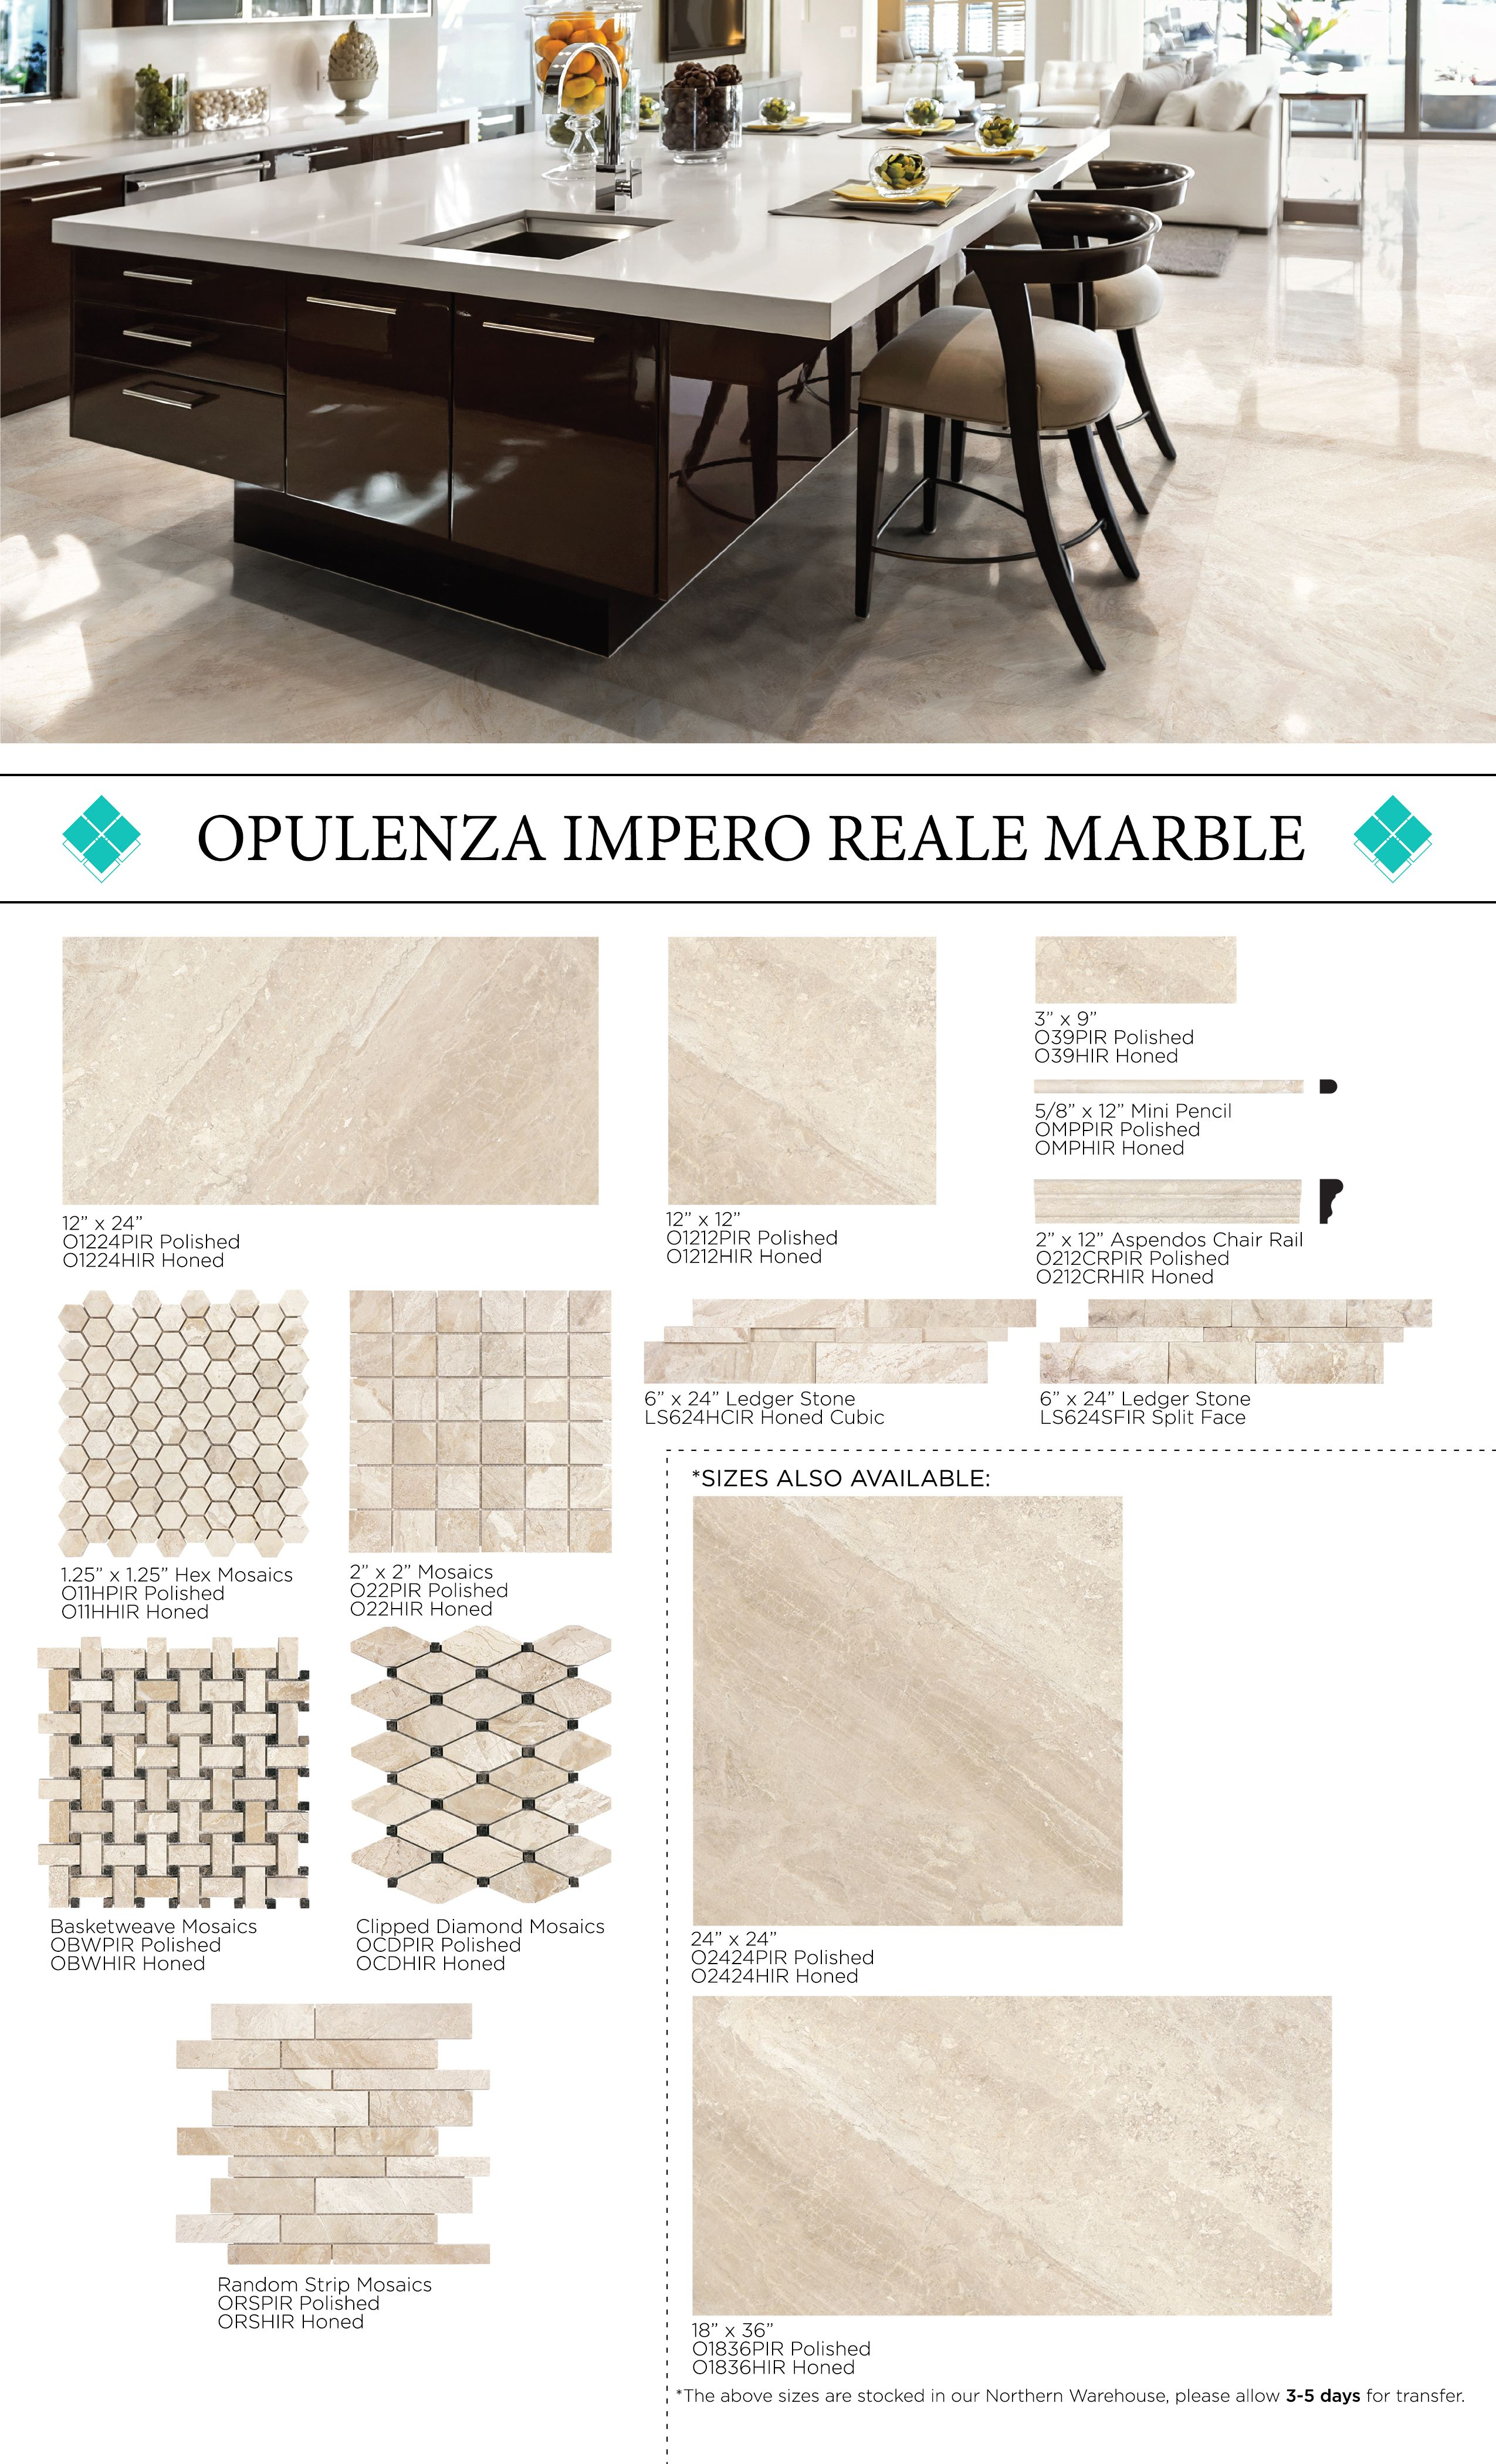 opulenza marble impero reale chair